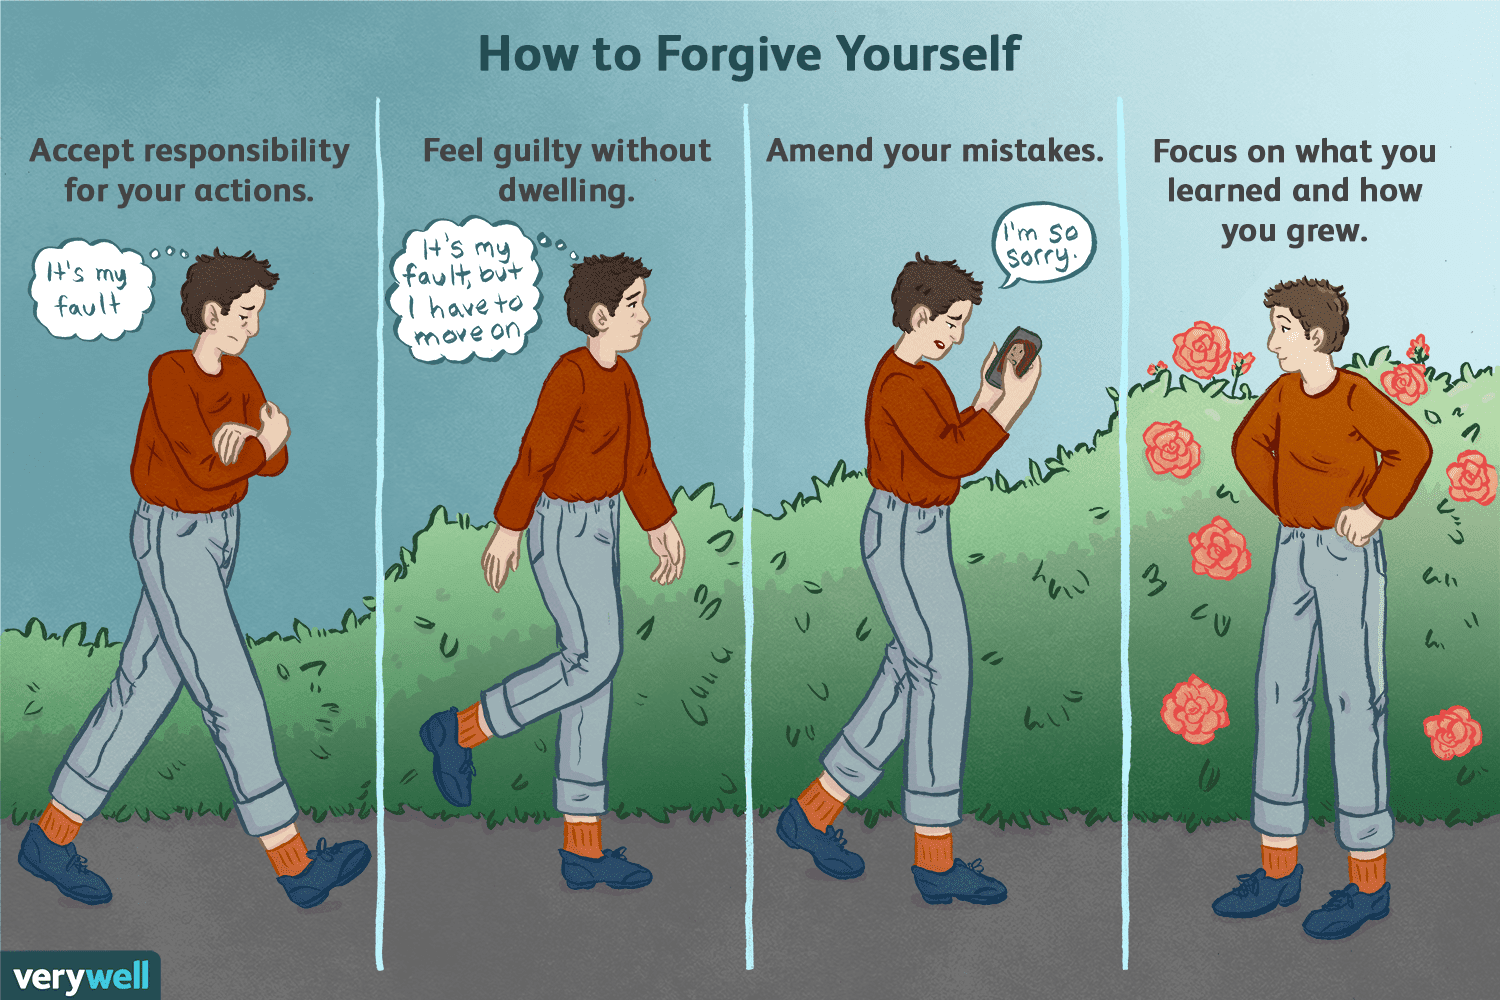 Self-Forgiveness: Steps to Take to Forgive Yourself